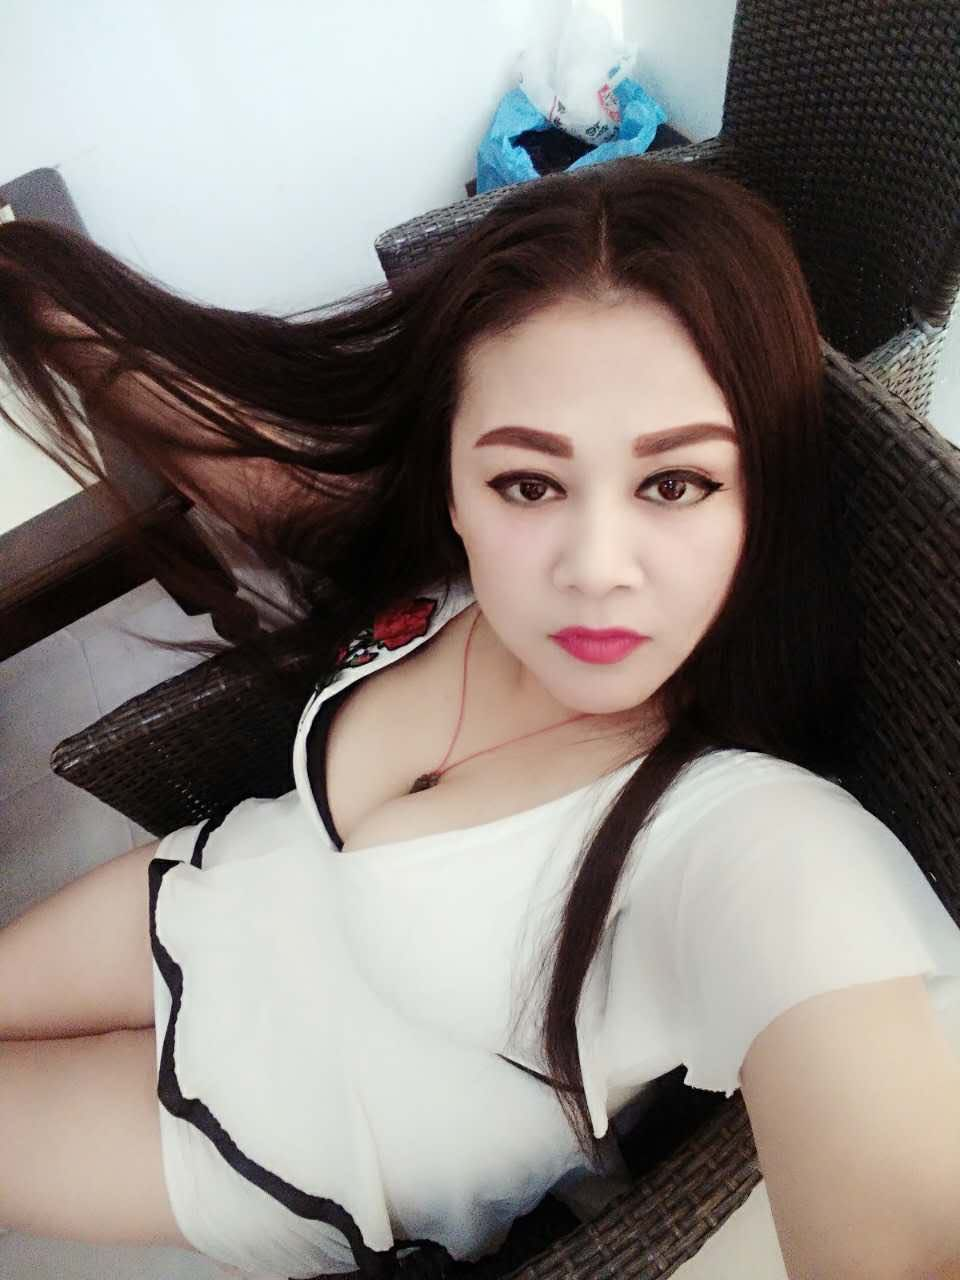 chinese escort agency stroking